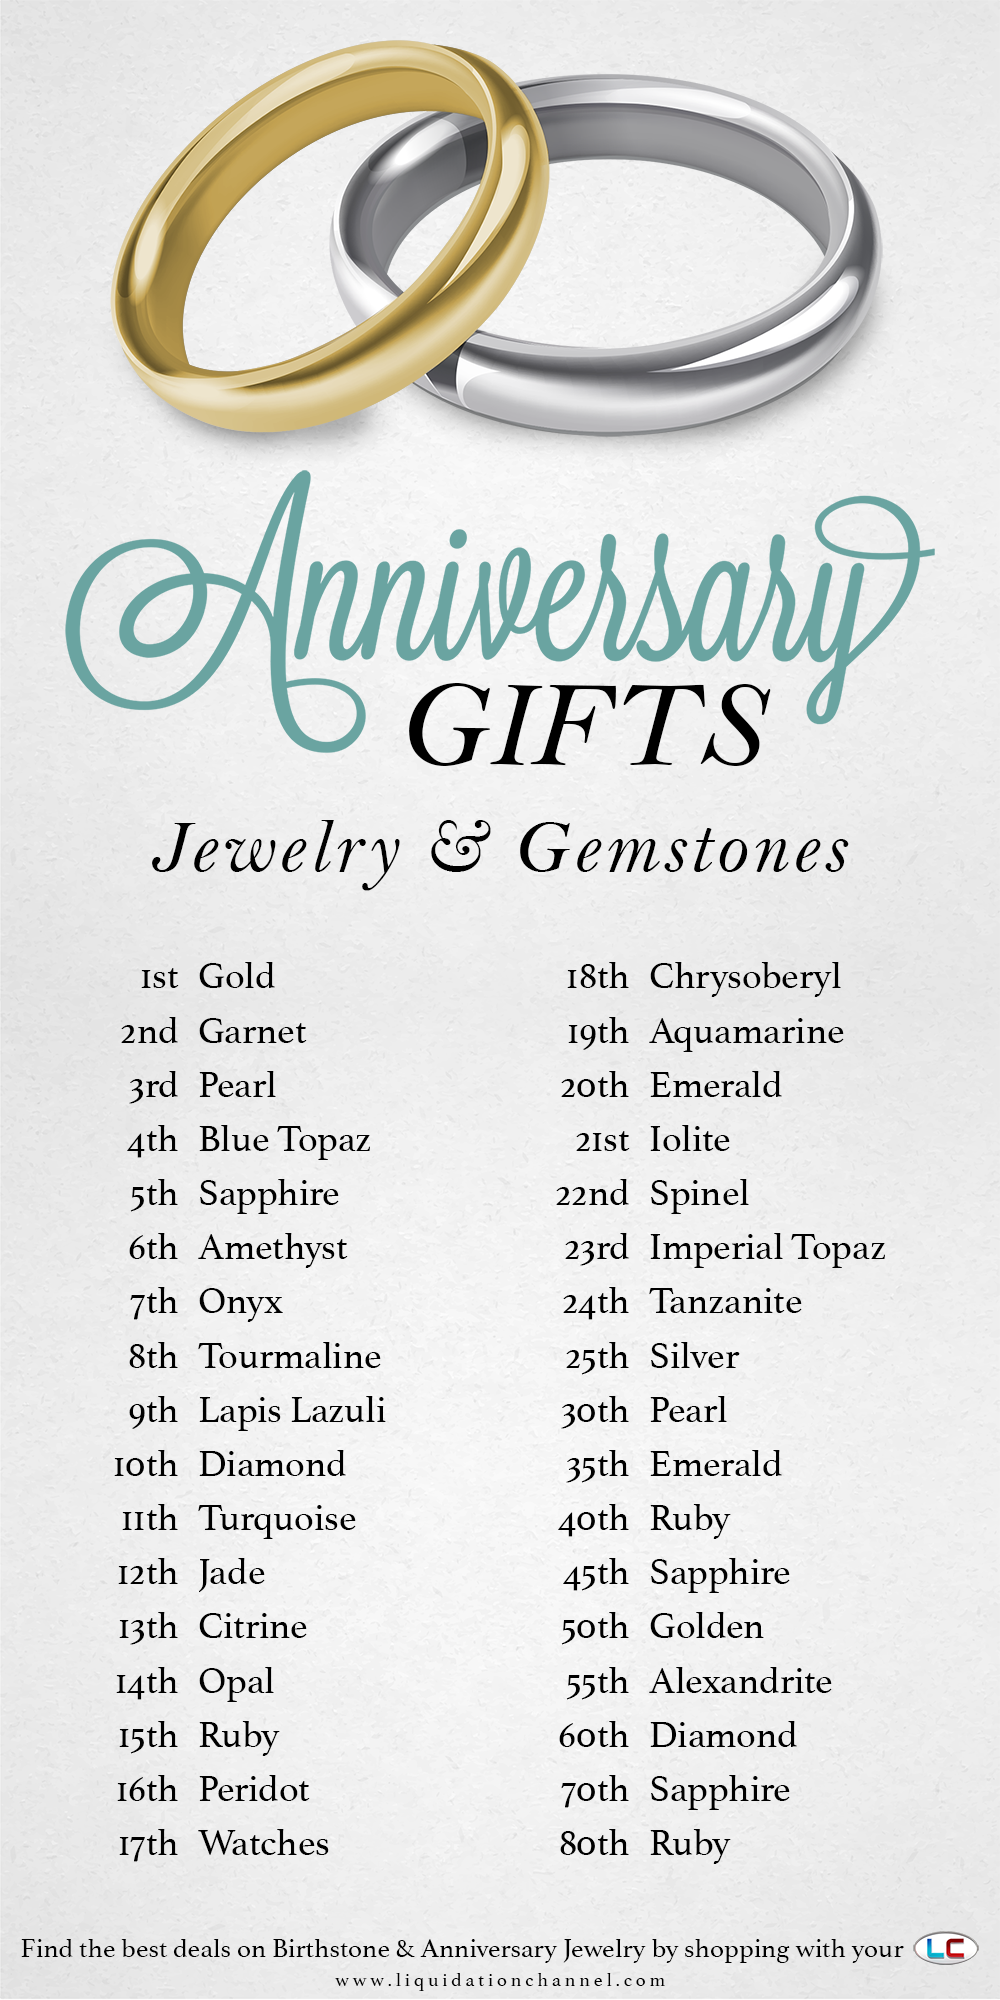 Anniversary Gifts Jewelry And Gemstones Not Sure About What To Get For Your Upcoming Anniversary Happy Anniversary Gifts Anniversary Gifts Aniversary Gifts